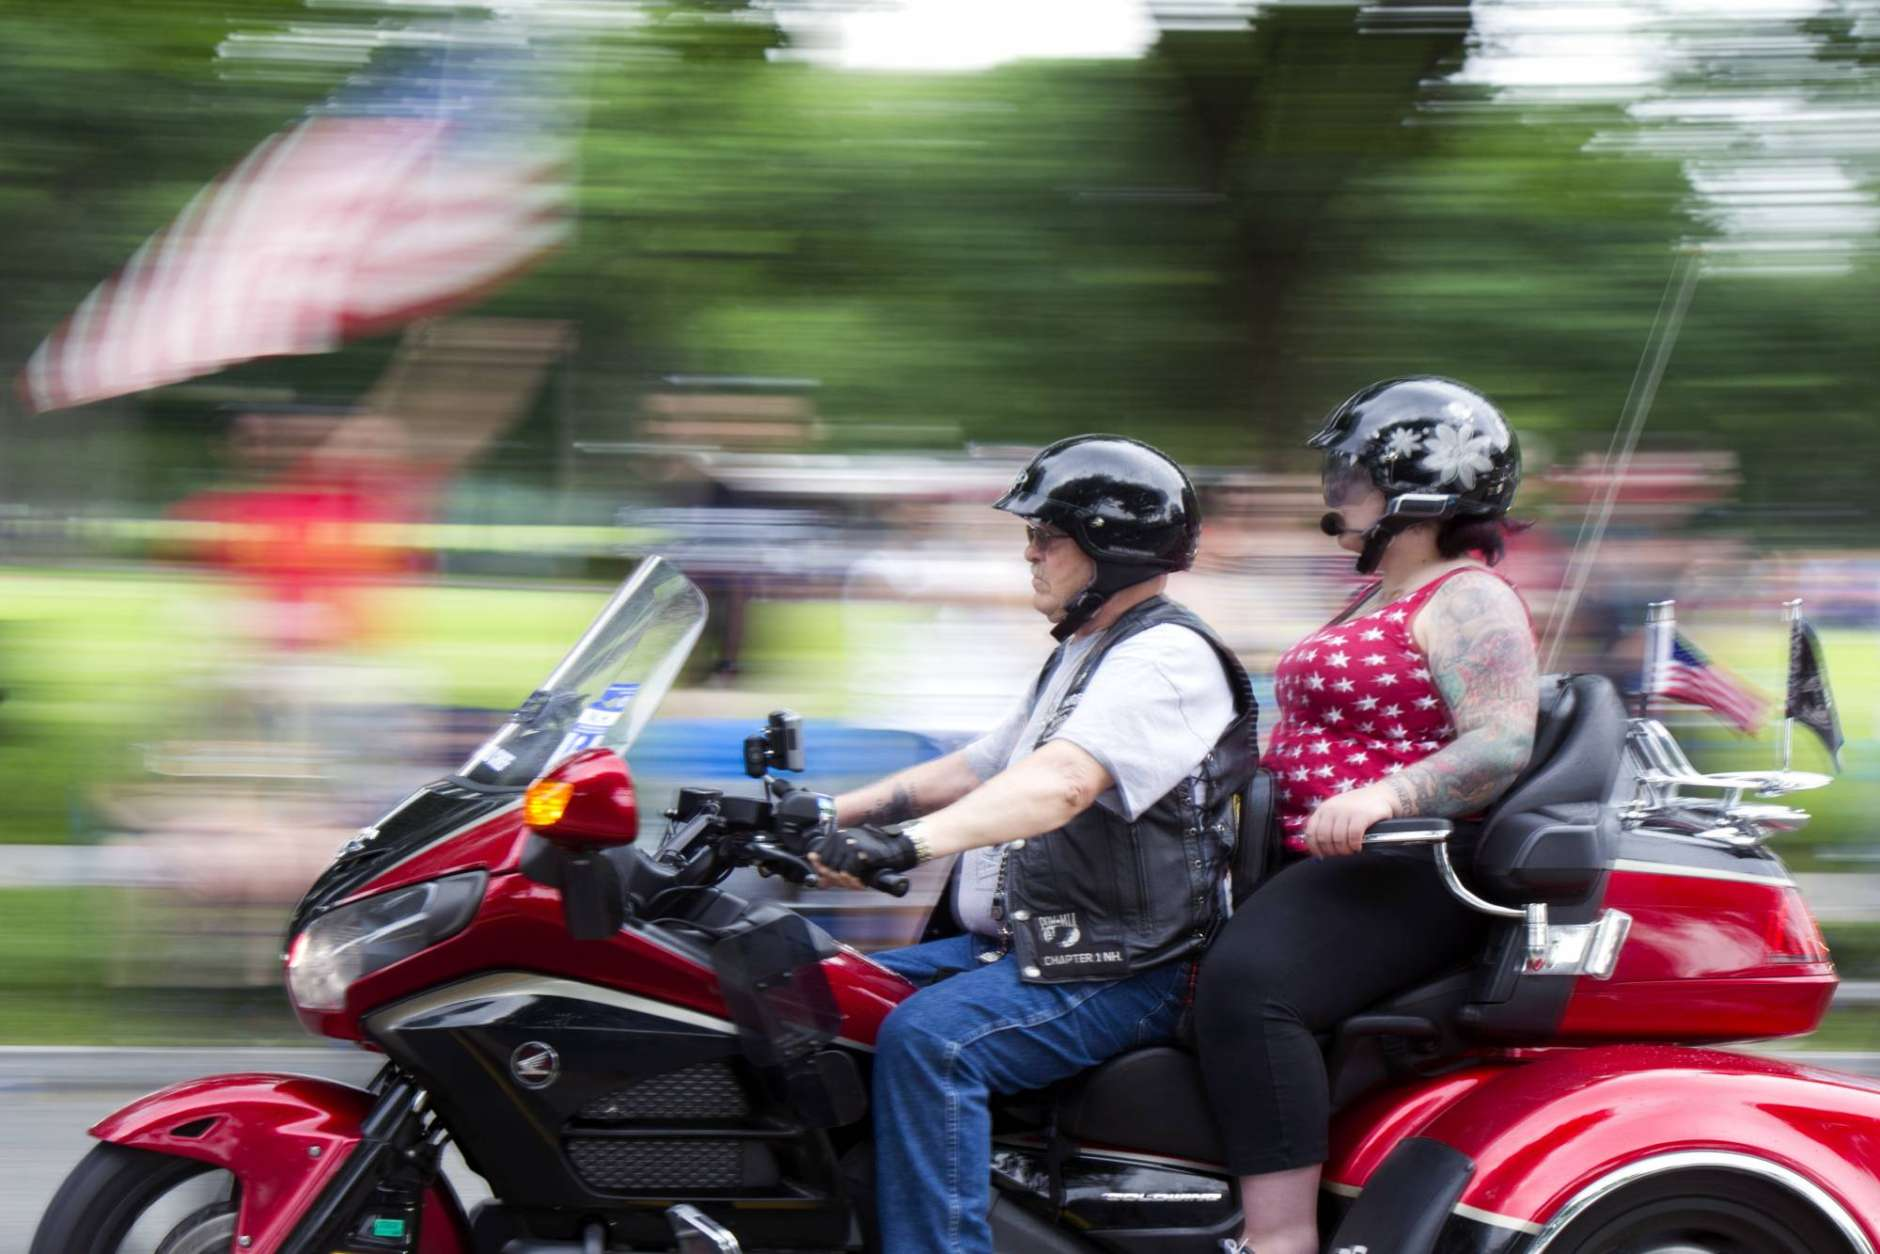 Motorcyclists participate in the 30th anniversary of the Rolling Thunder 'Ride for Freedom' demonstration in Washington, Sunday, May 28, 2017. Rolling Thunder seeks to bring full accountability for all U.S. prisoners of war and missing in action (POW/MIA) soldiers. (AP Photo/Cliff Owen)